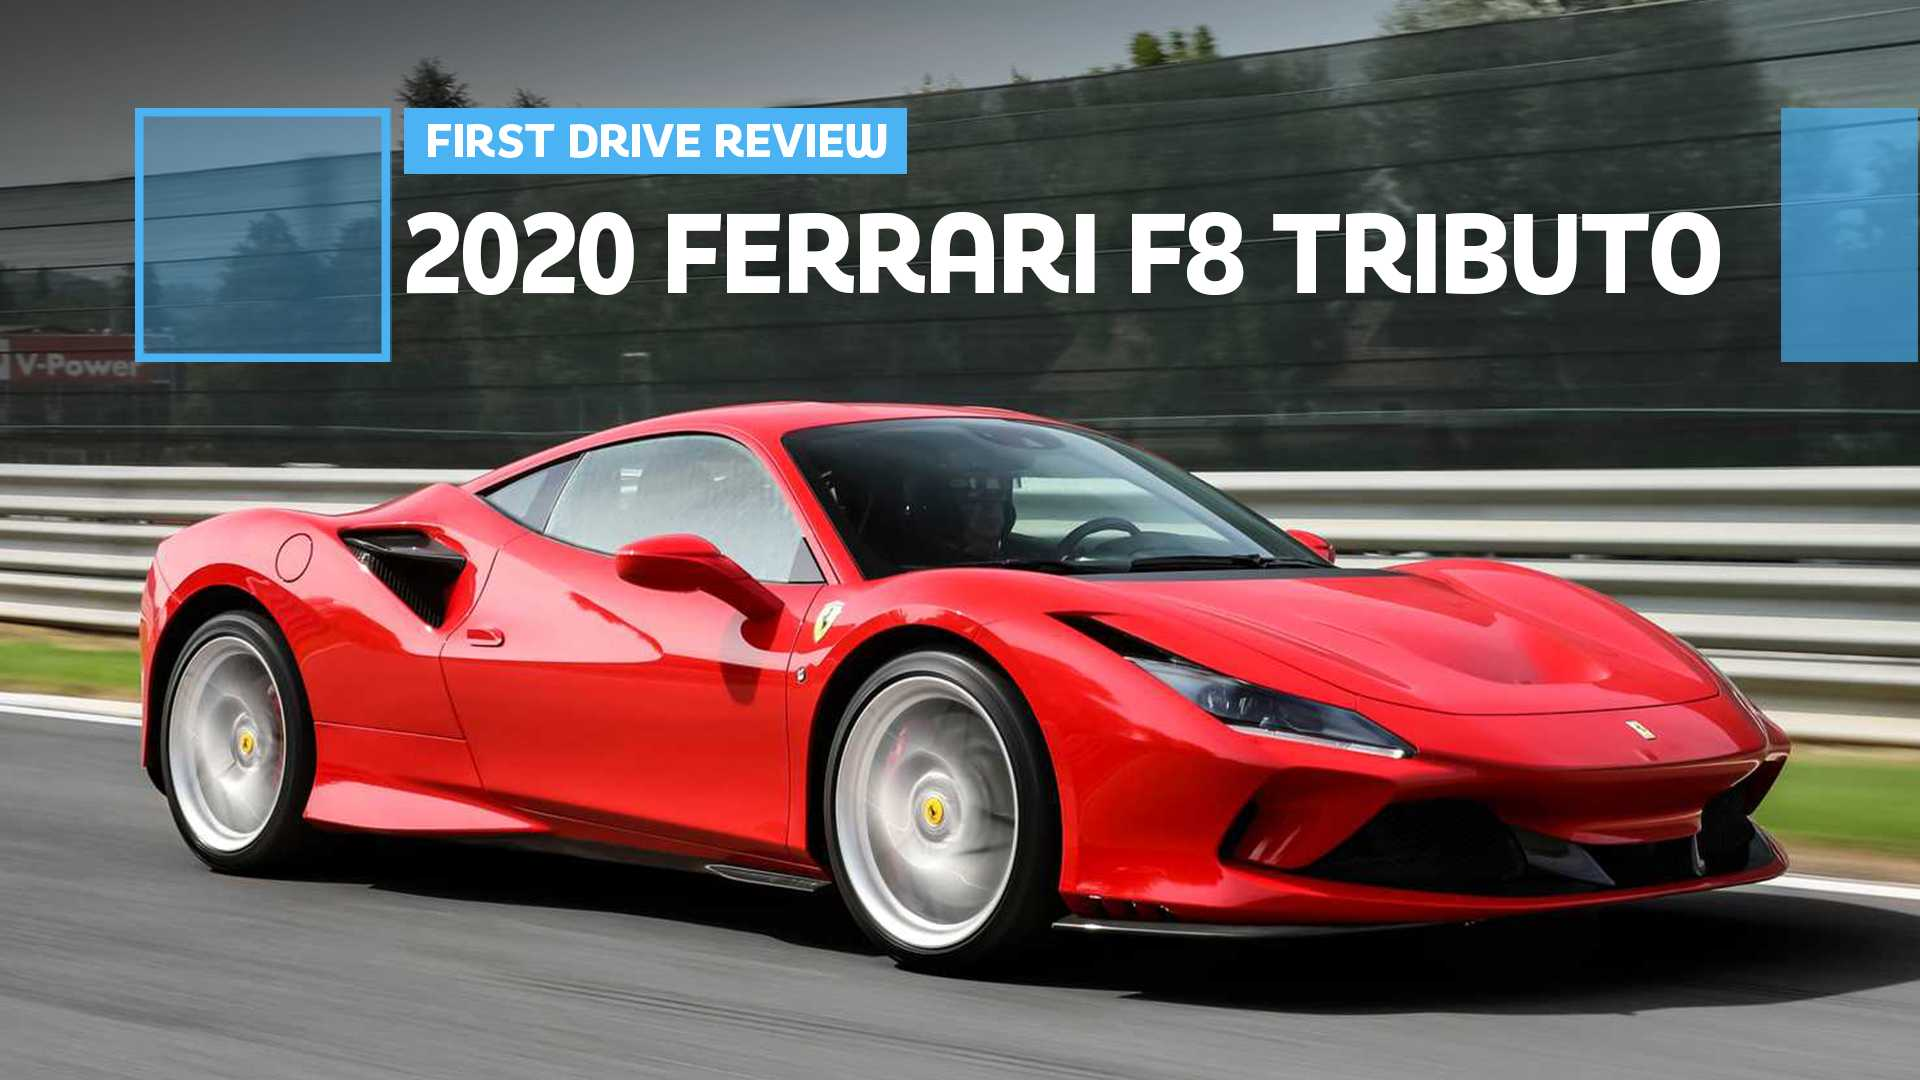 2020 Ferrari F8 Tributo First Drive Ferrari As It Used To Be